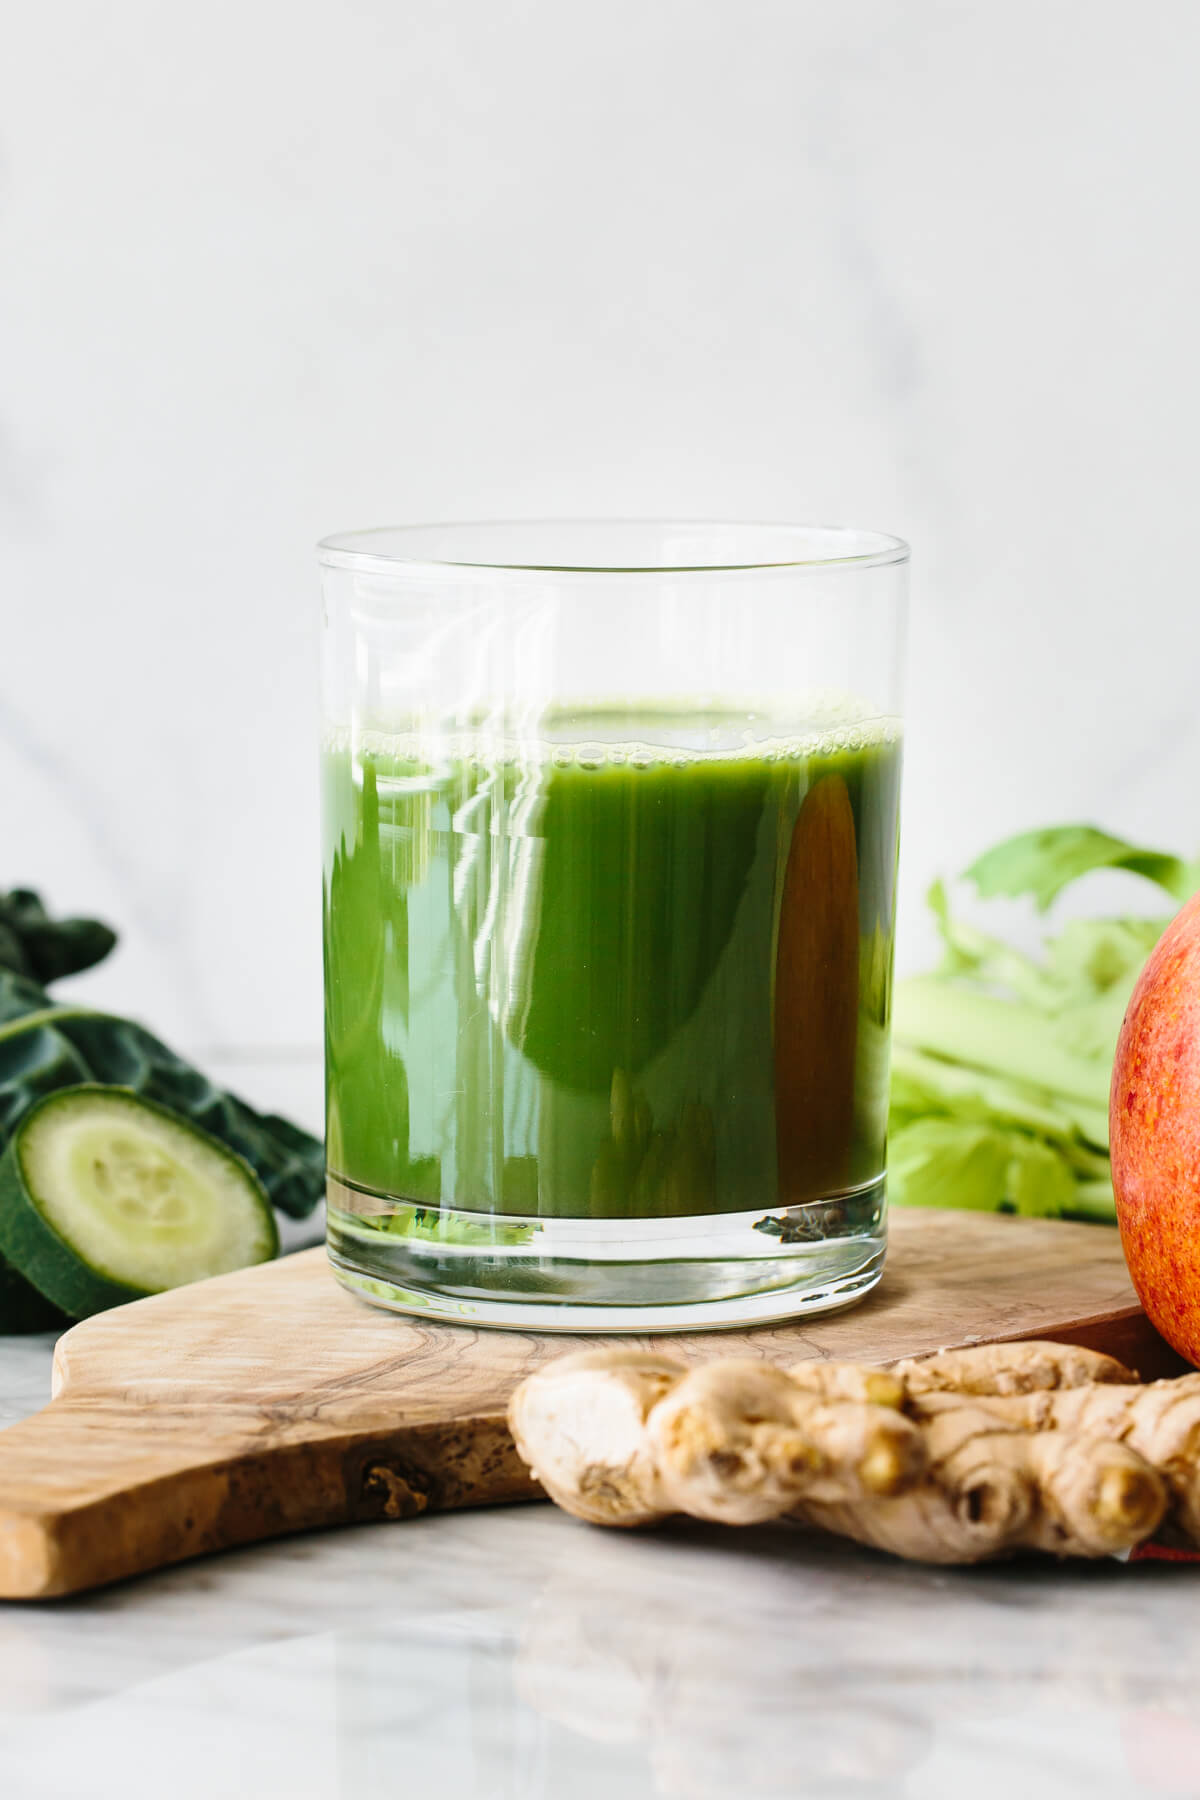 A glass of green juice